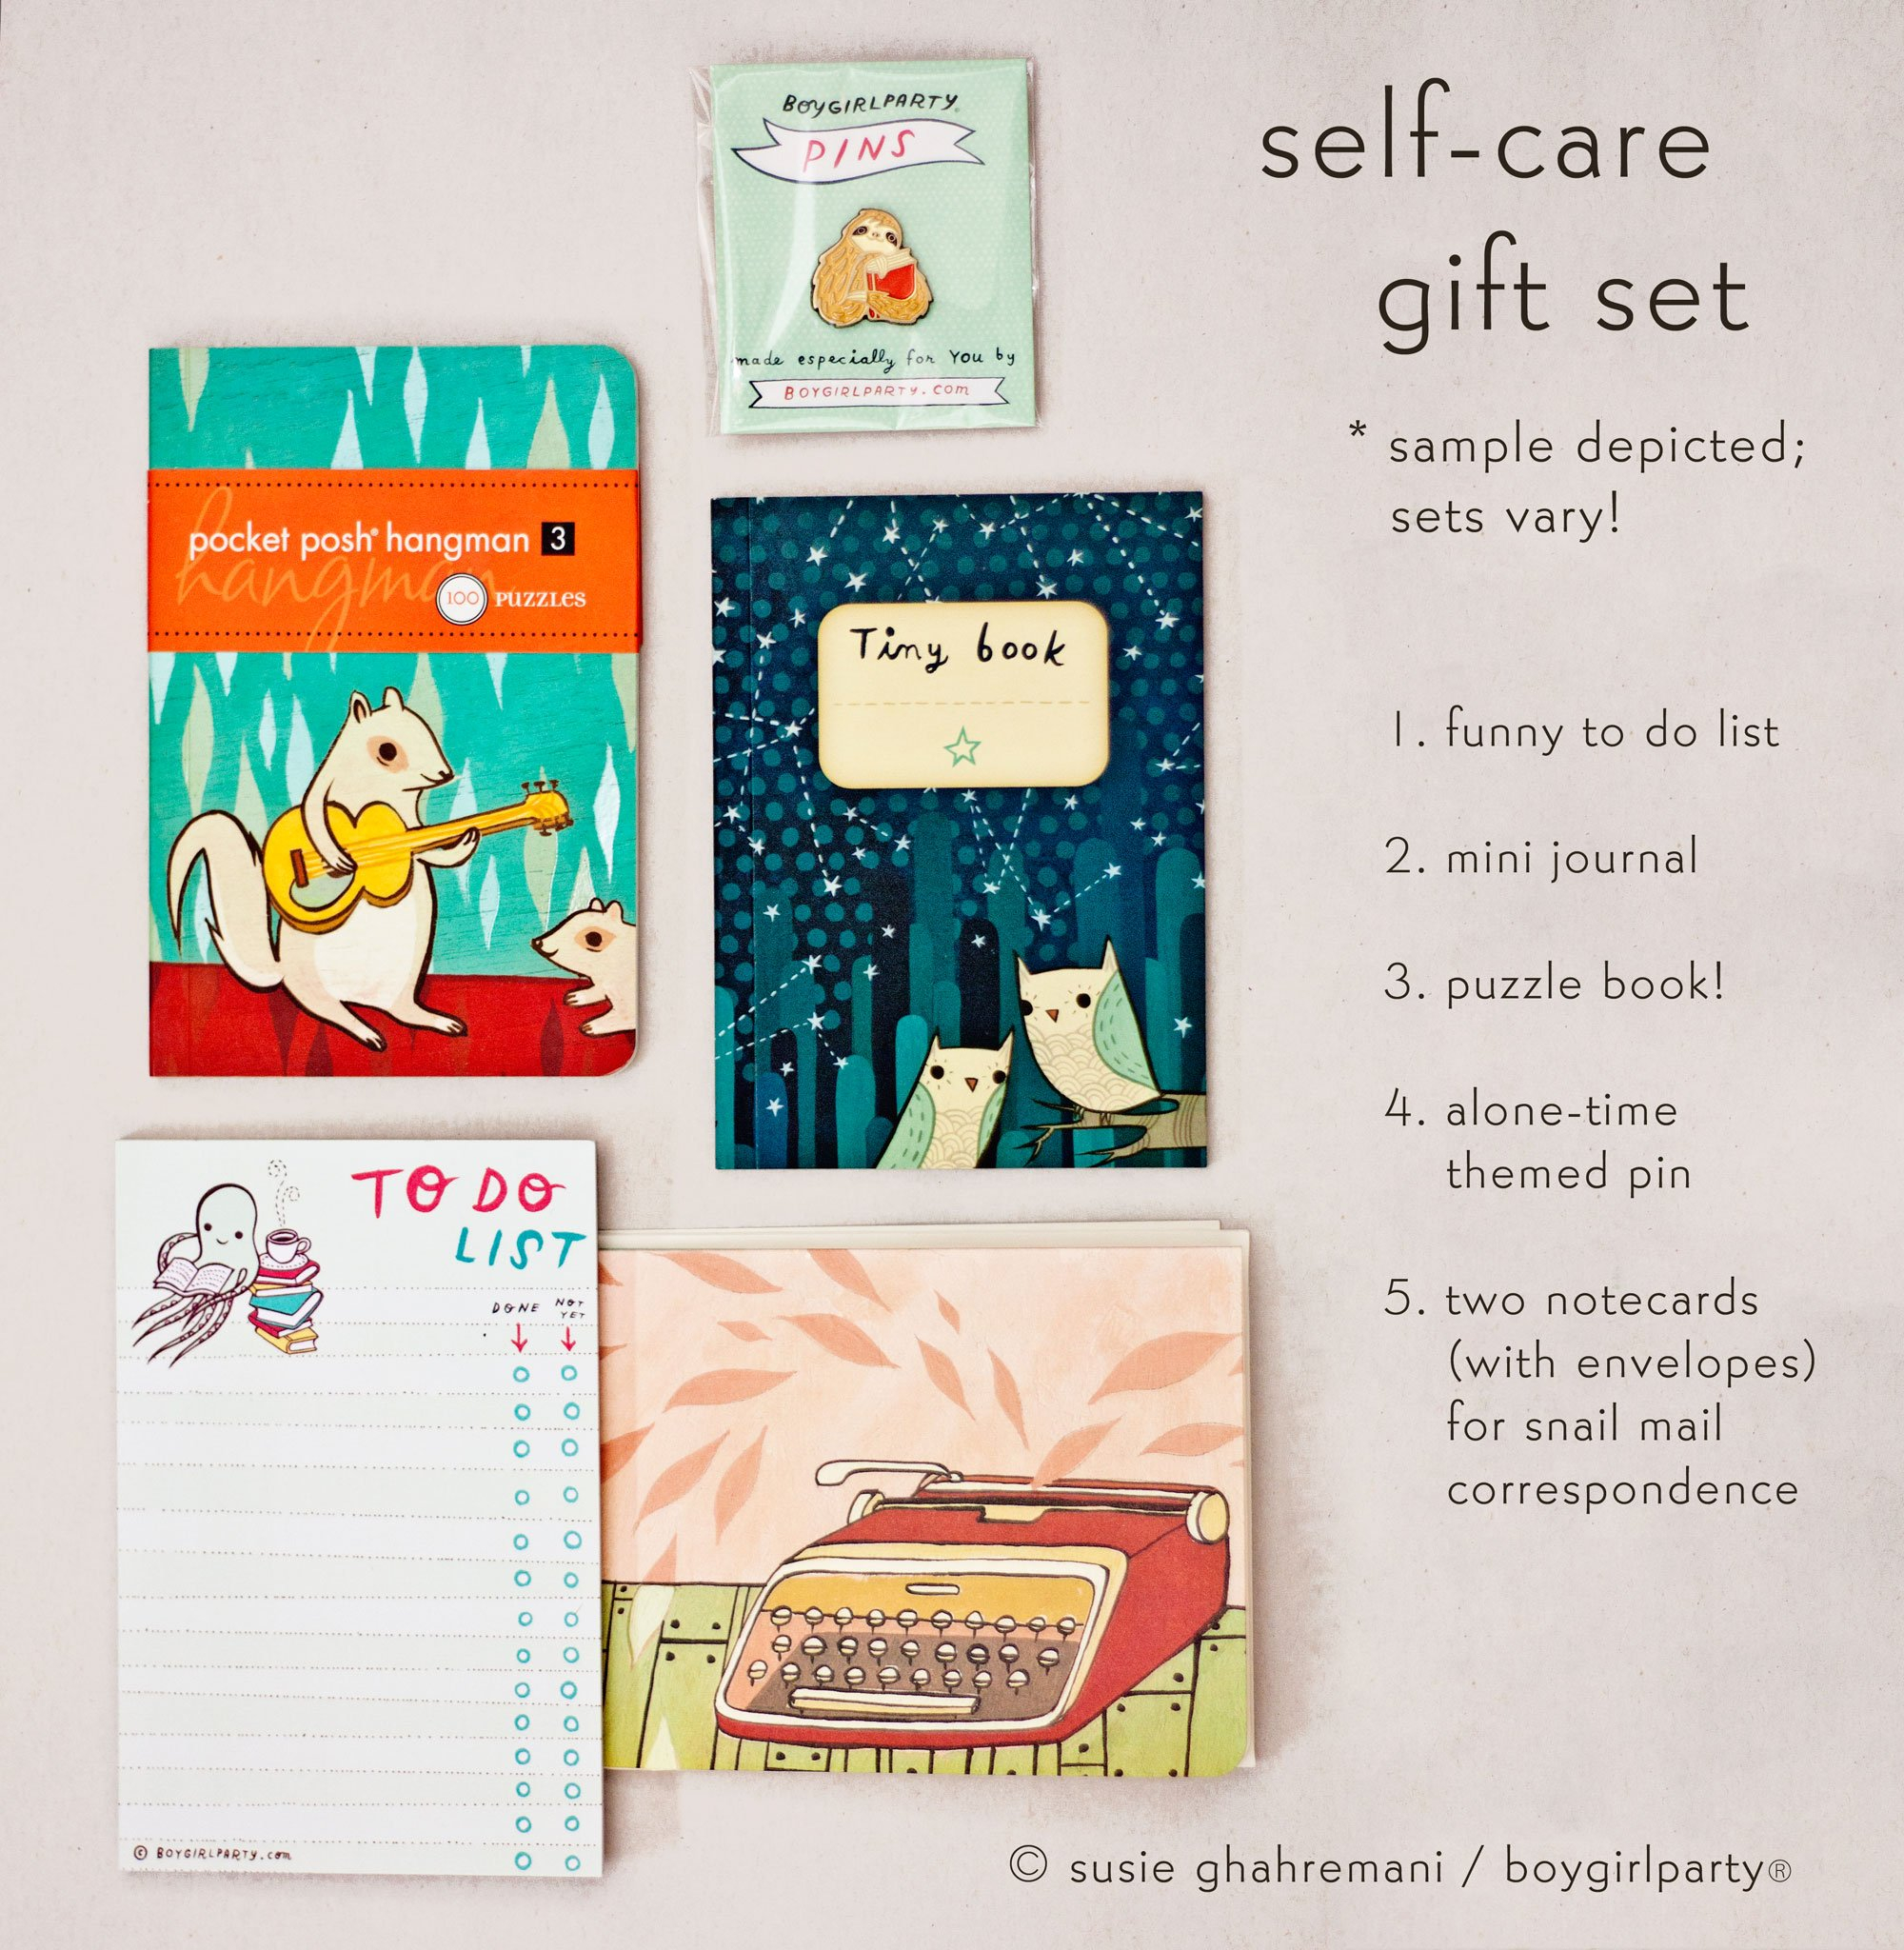 Image of Boygirlparty Self Care Gift Set -- Puzzle book, mini journal, and more